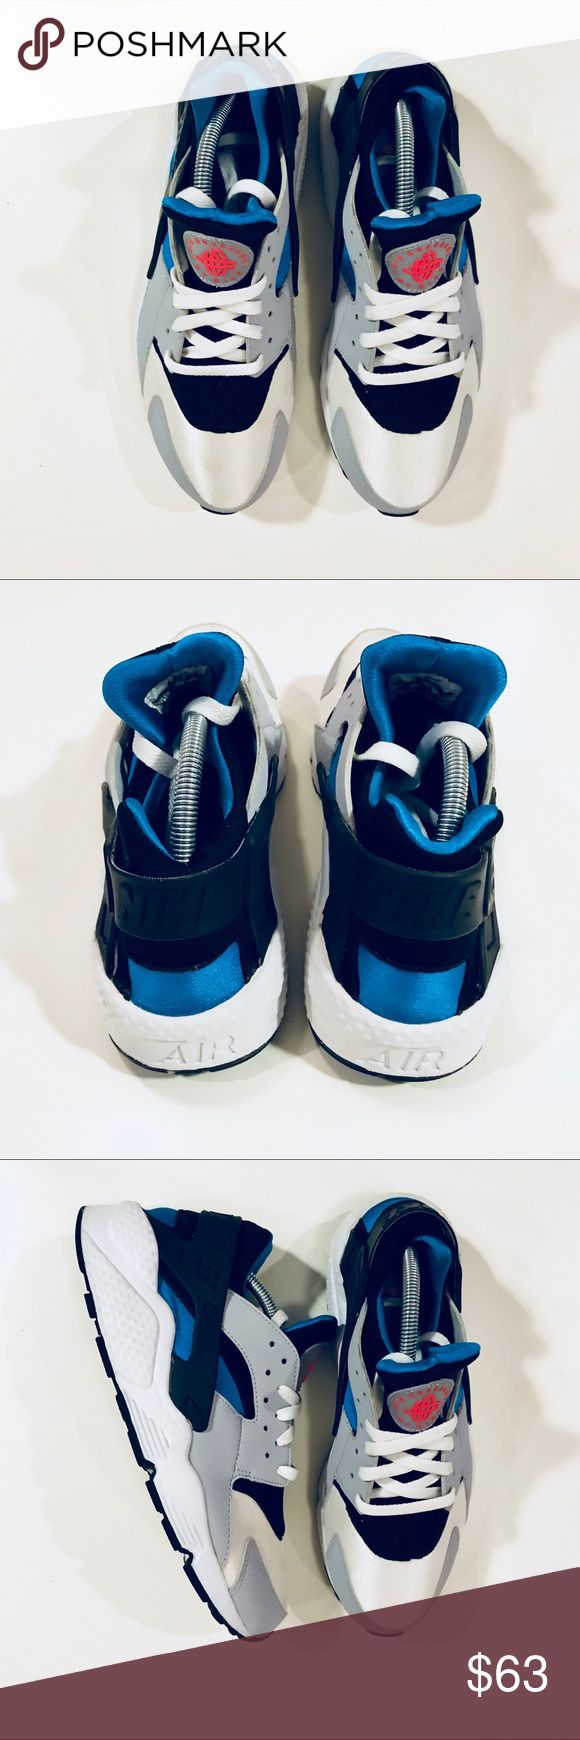 """Nike Air Huarache """"Blue Hero"""" (Limited Release) The """"Blue Hero"""" colorway is officially a white/wolf grey-blue hero model with the blue hero accents on the heel and the inner lining of the bootie. Shoes runs small so a size 11 fits like a size 10. Nike Shoes Sneakers"""